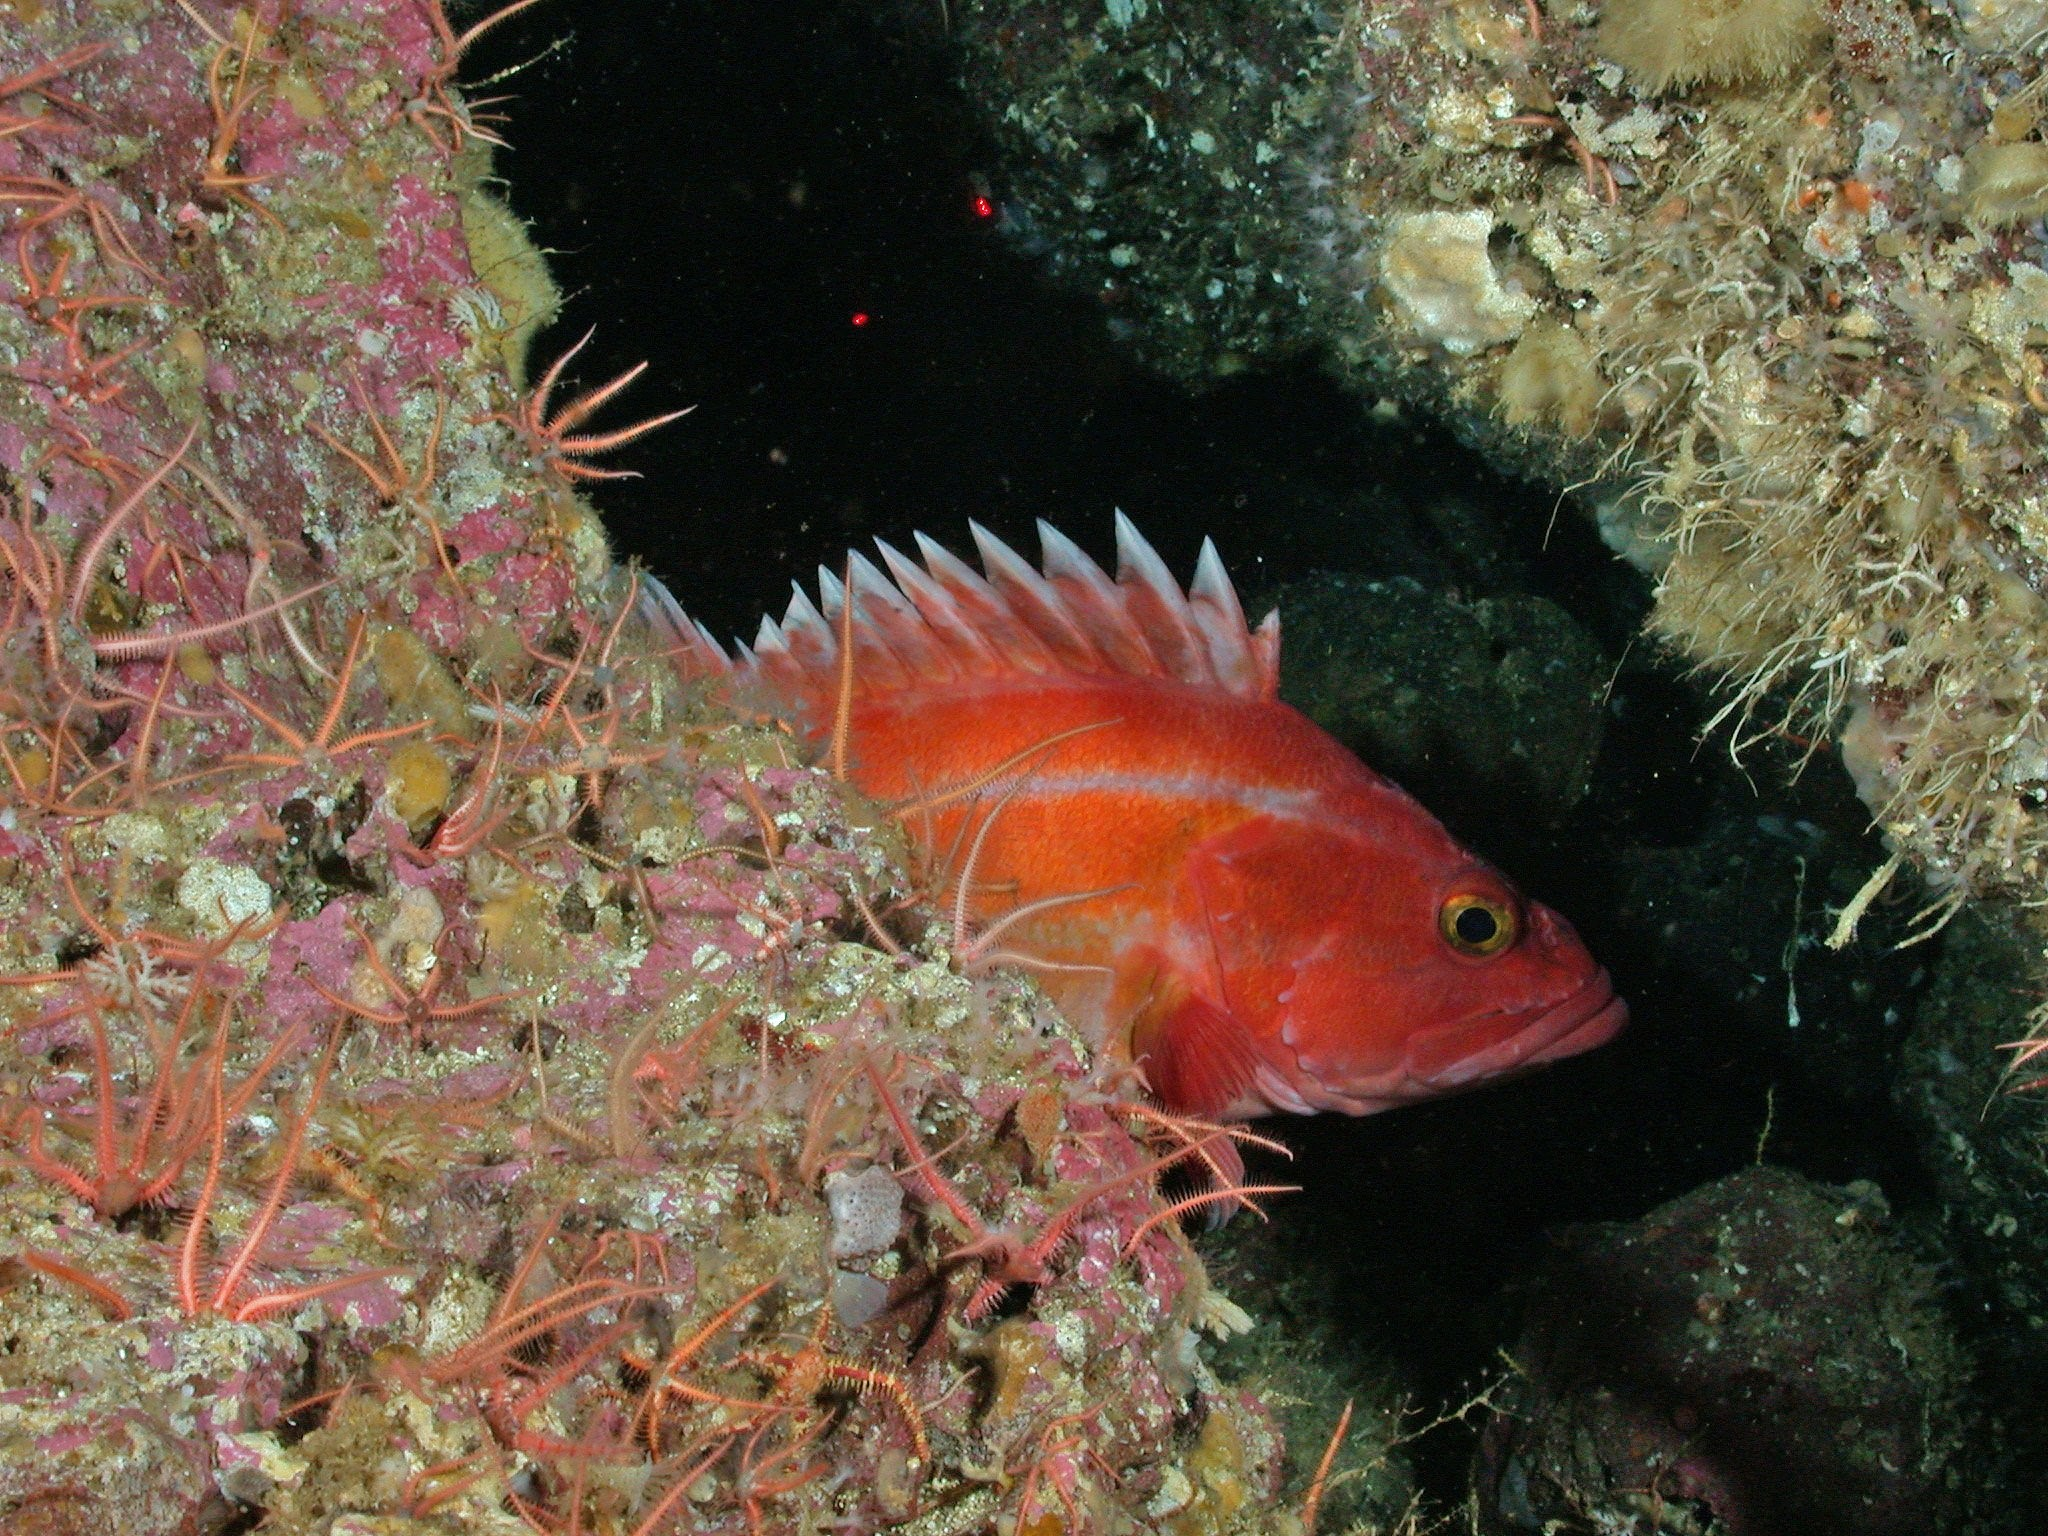 Juvenile yelloweye rockfish; Photo from NOAA